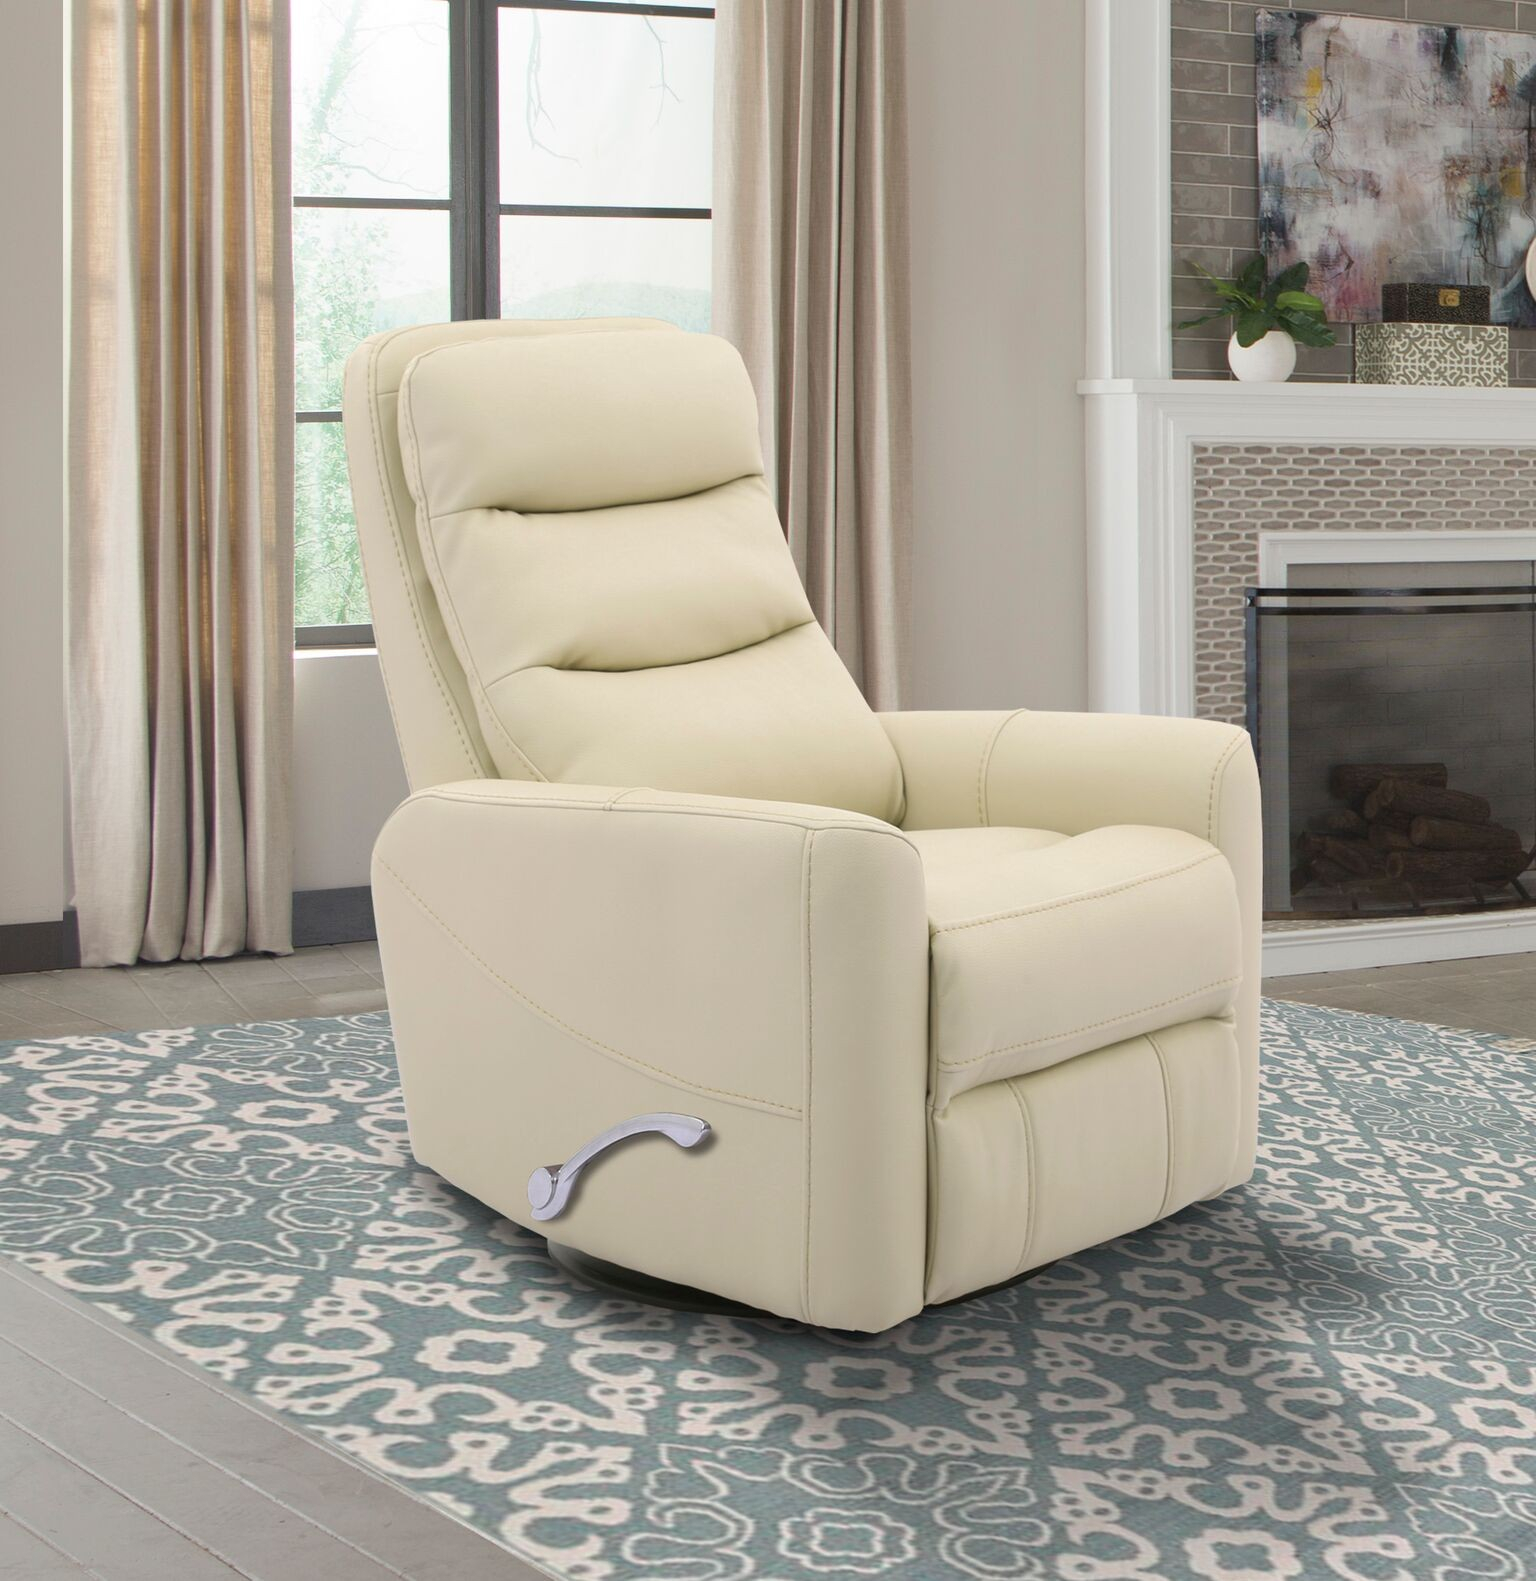 Hercules  Oyster  Swivel Glider Recliner With Articulating Headrest Regarding Hercules Grey Swivel Glider Recliners (Photo 6 of 20)